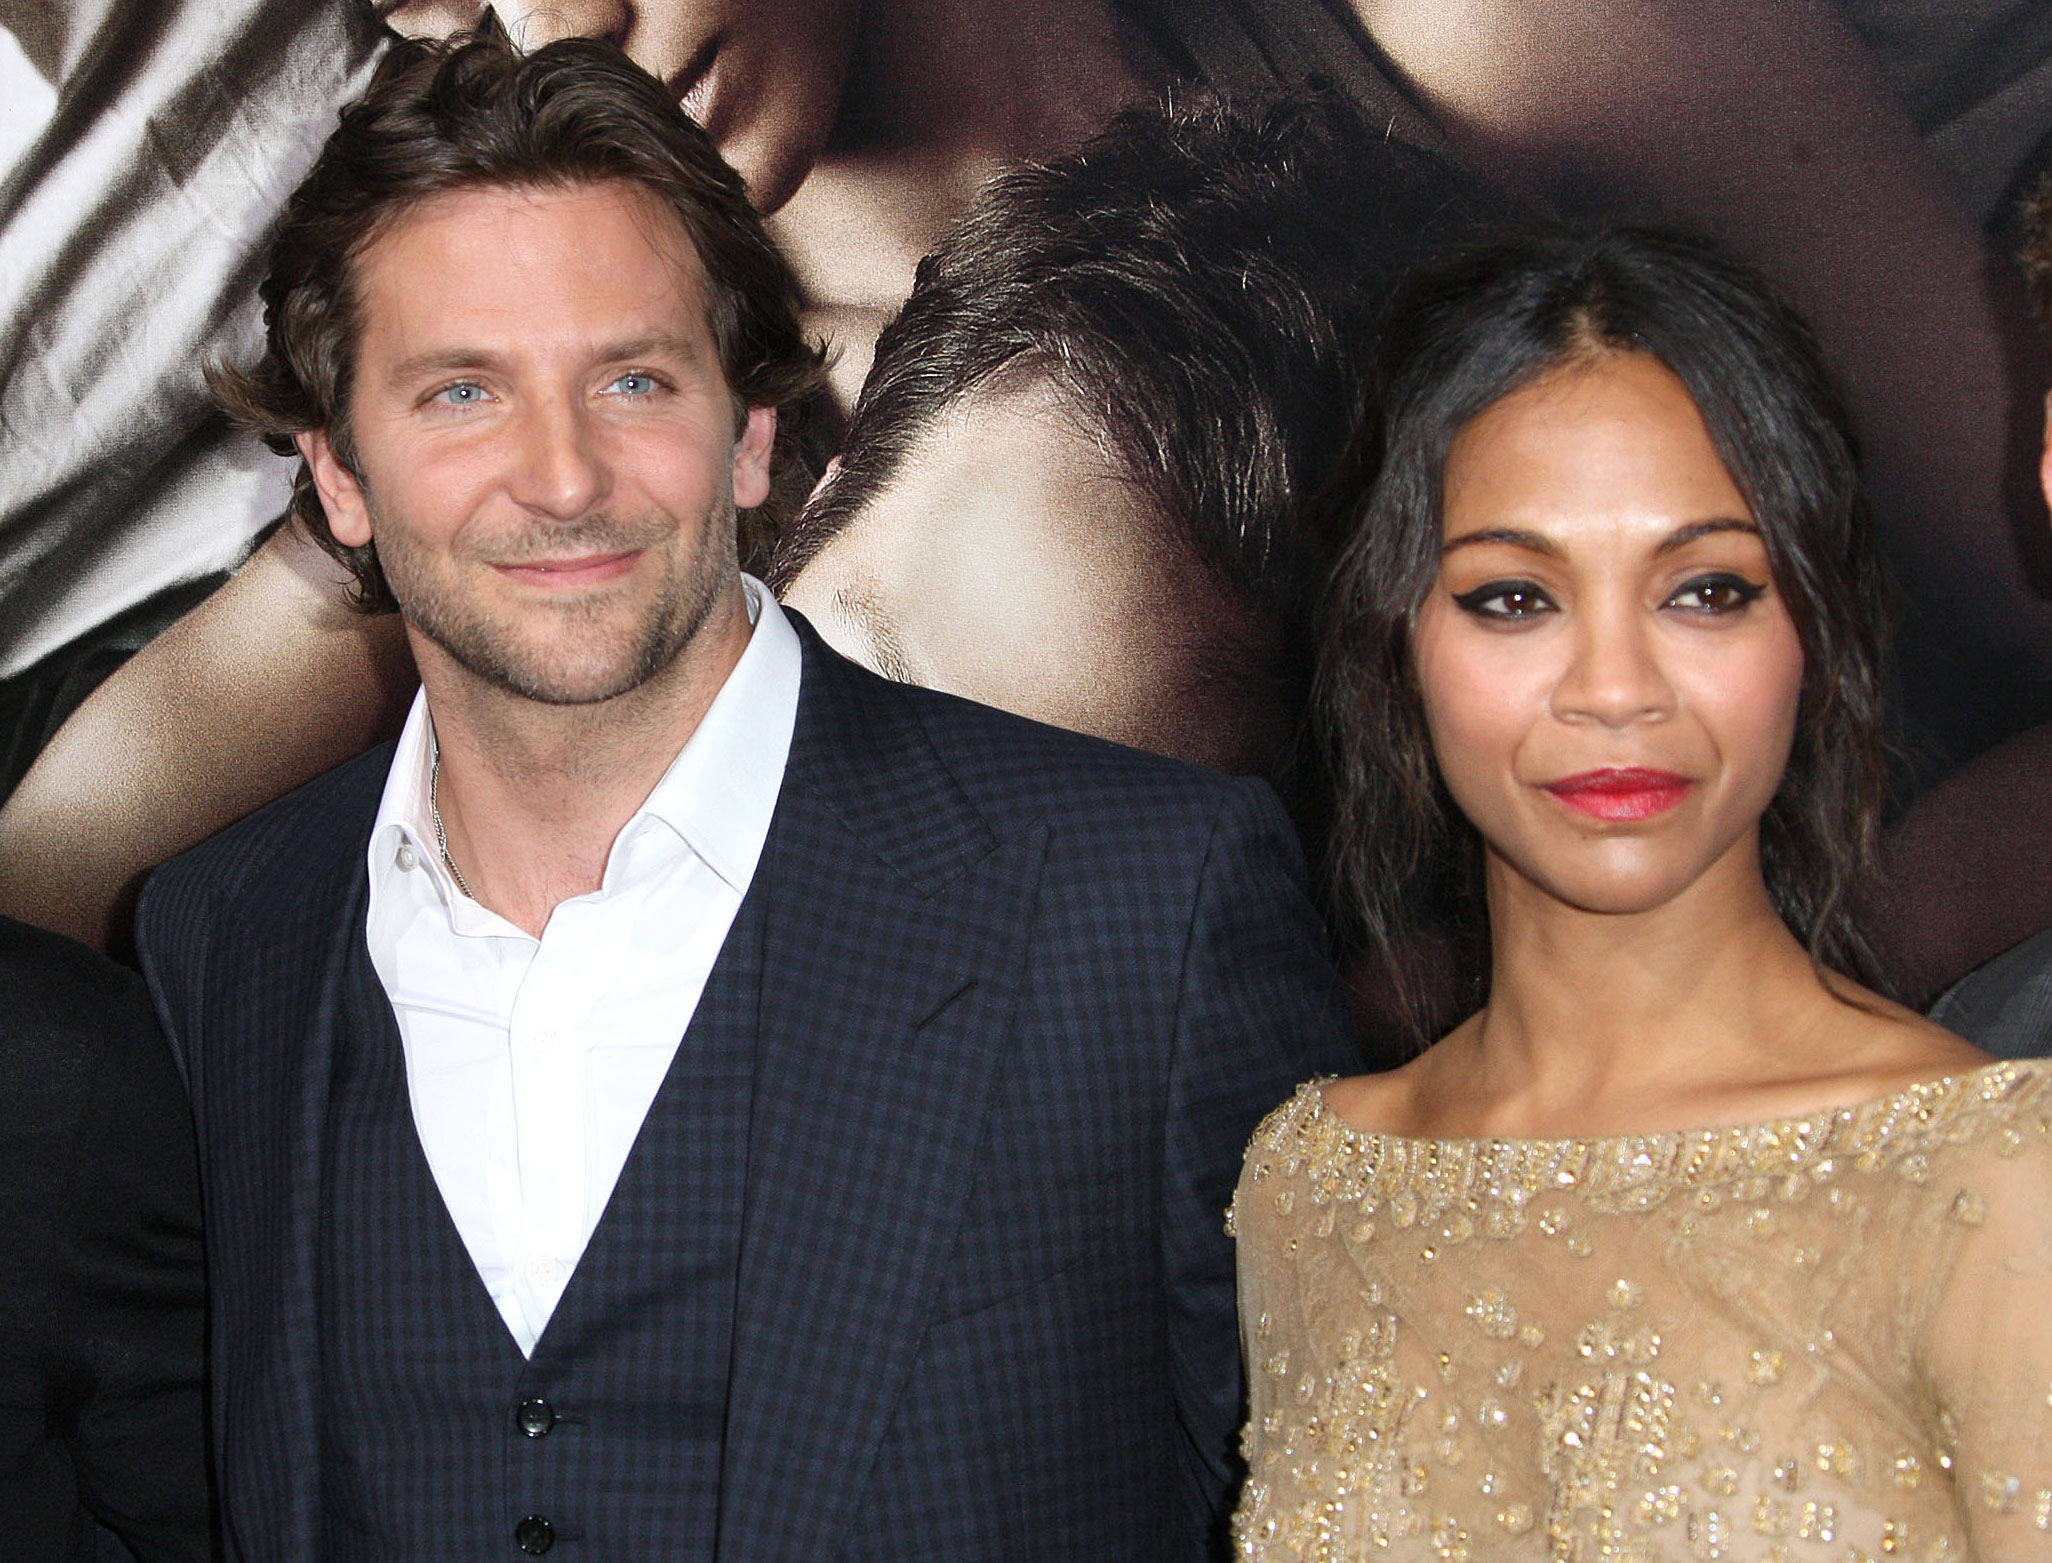 Bradley Cooper and Zoe Saldana Rumors